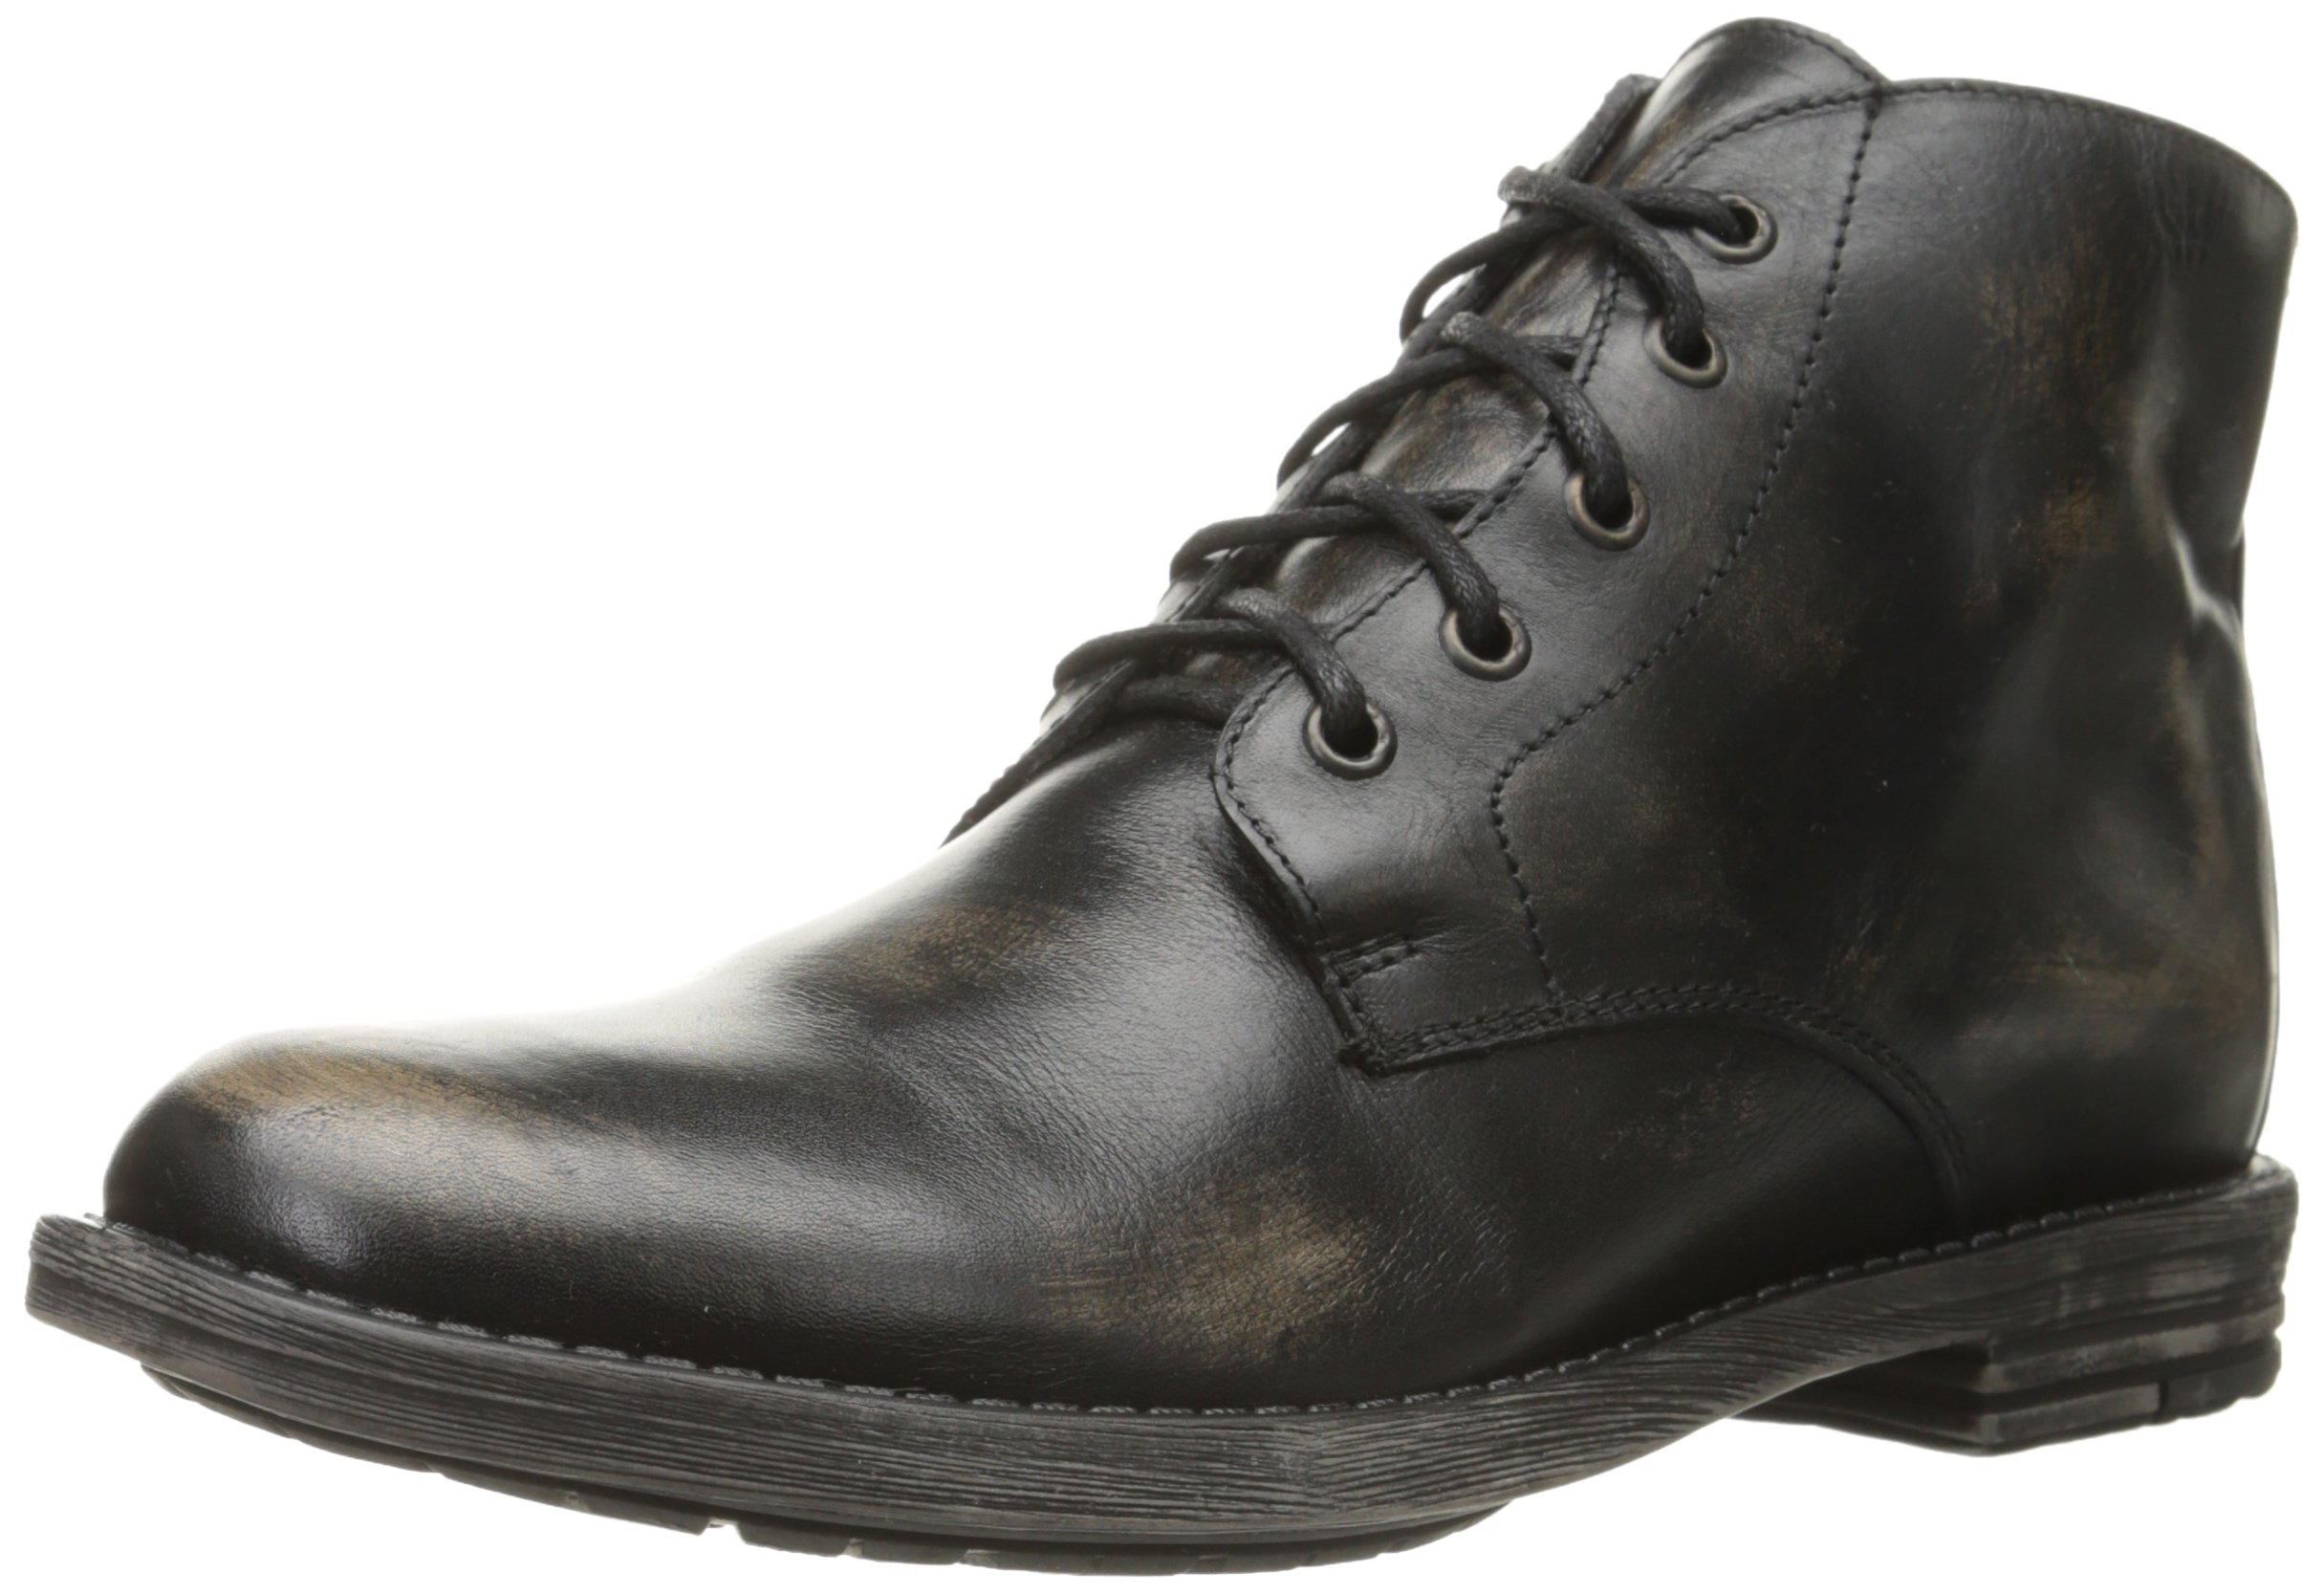 Bed Stu Men's Hoover Chukka Boot, Black Handwash, 9 M US